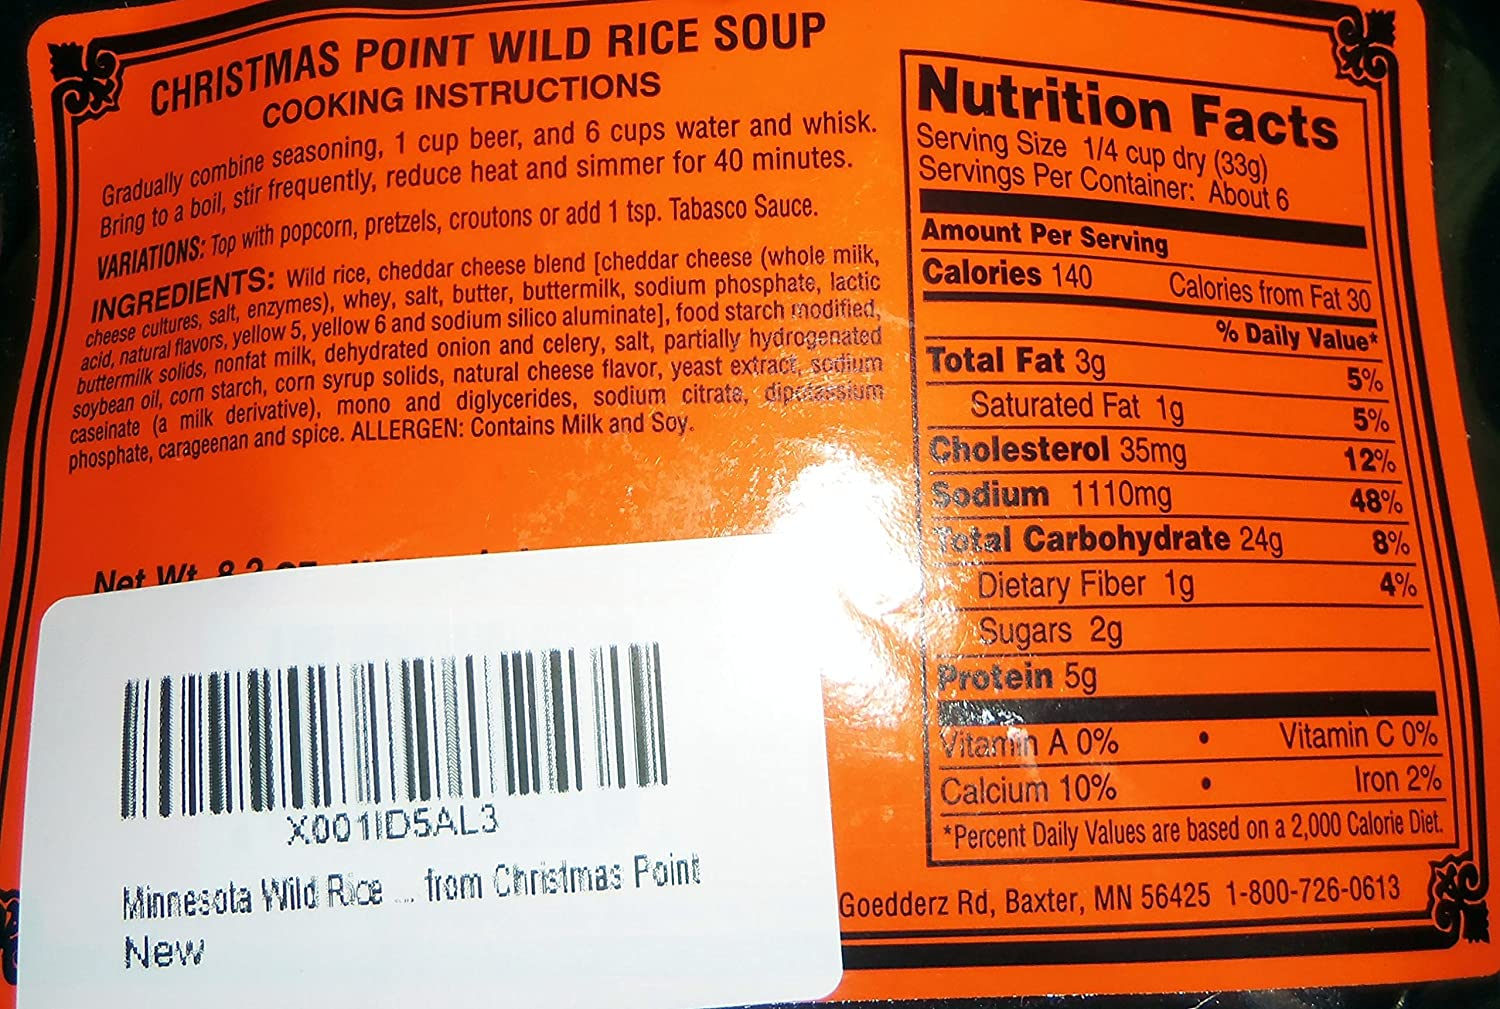 Christmas Point Baxter.Minnesota Wild Rice Beer Cheese Soup Mix From Christmas Point